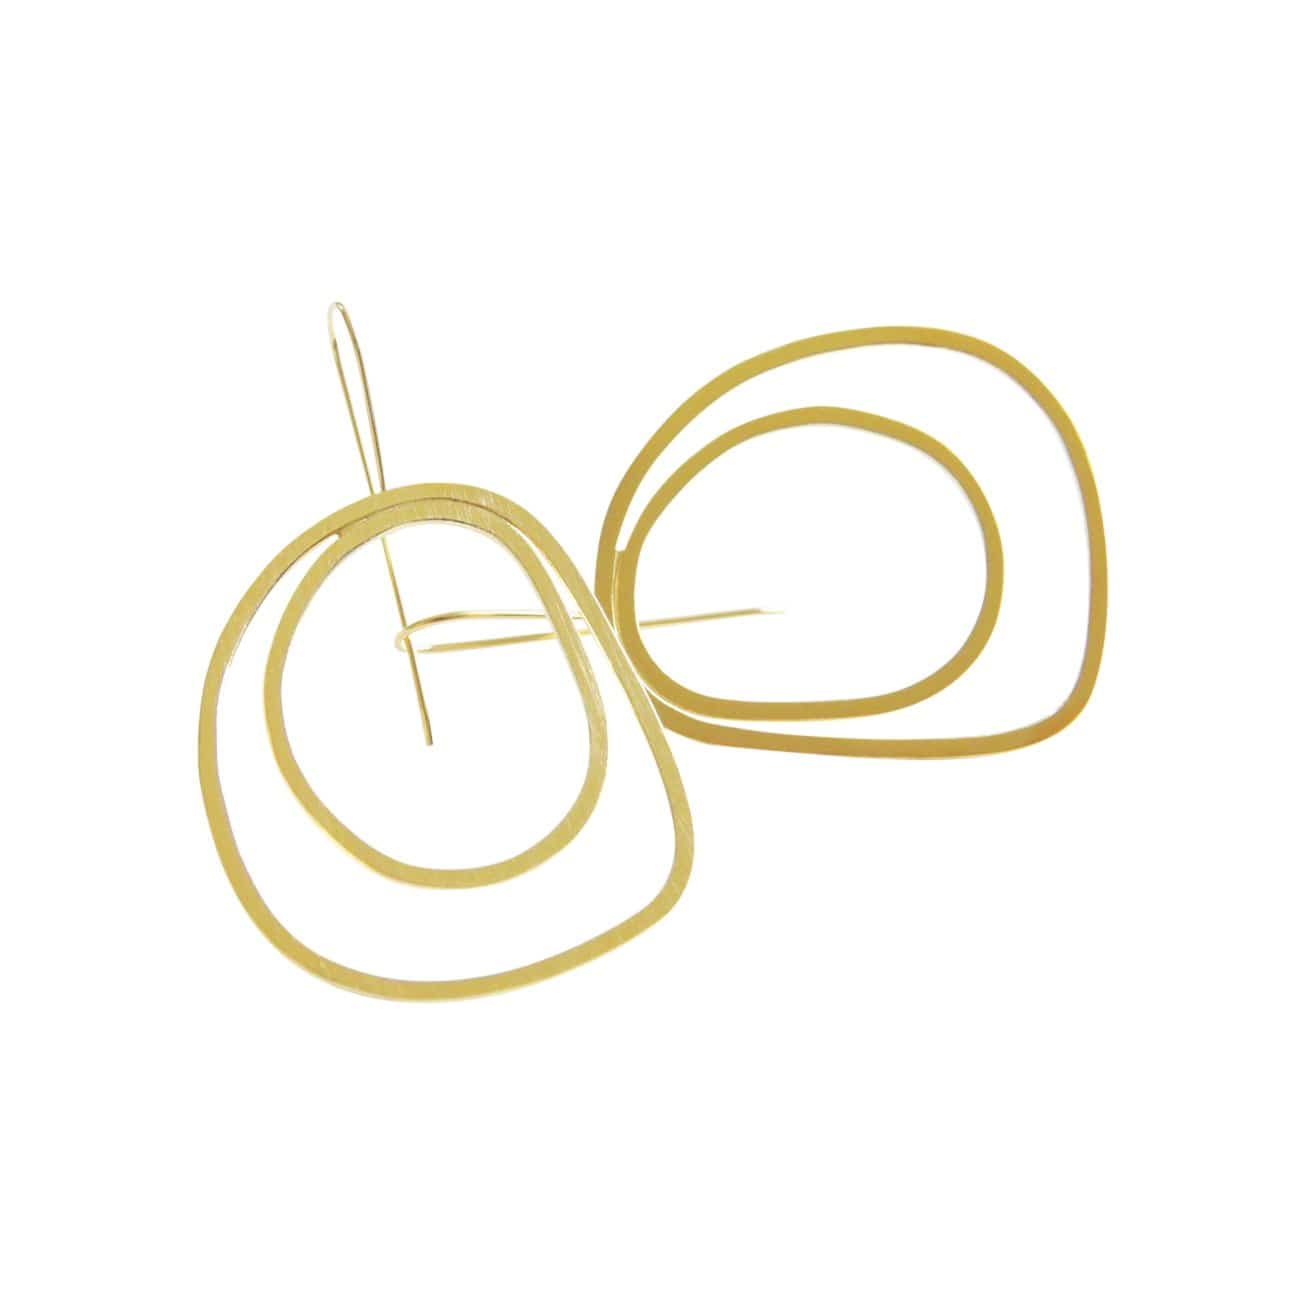 tothemetal Earrings Double Hoop Gold Earrings